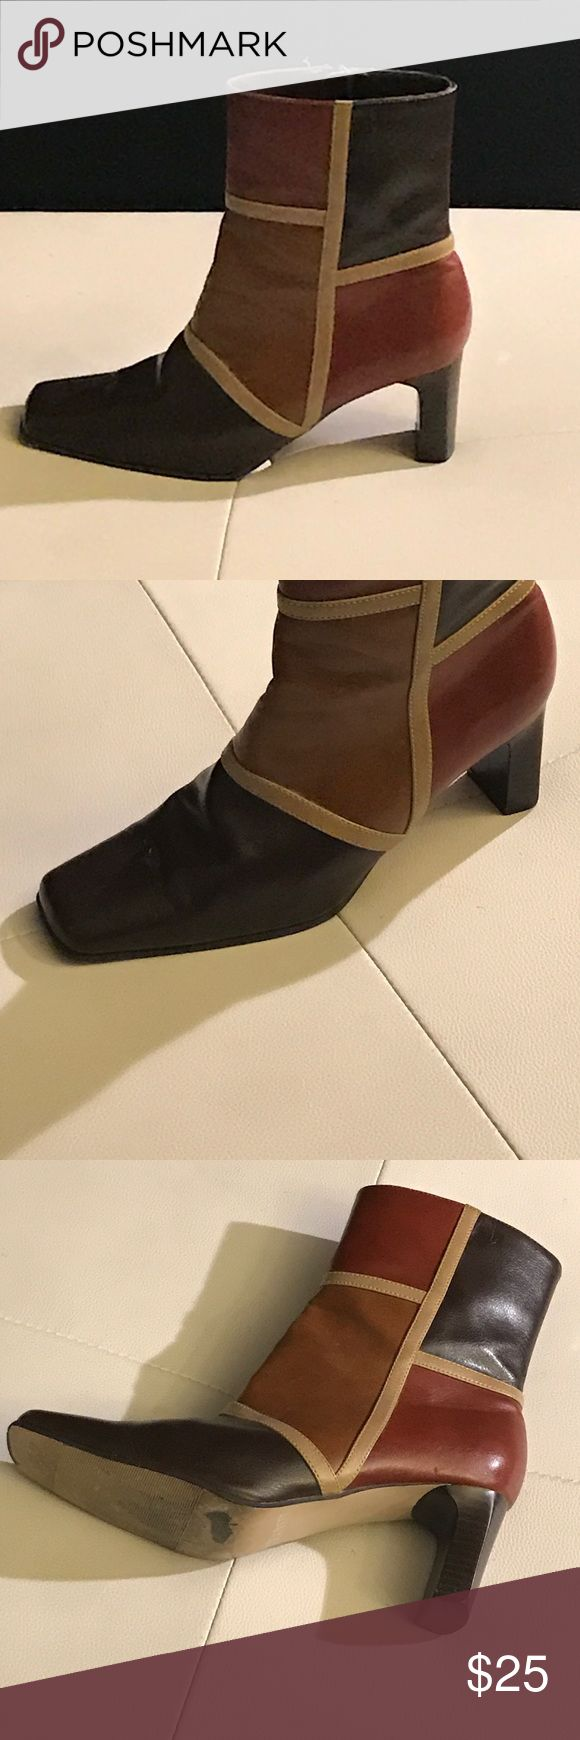 👢 Multicolor Short Ankle Boots Excellent Condition, side zipper, very little scuffs, square heel. Nice! Transit Shoes Ankle Boots & Booties